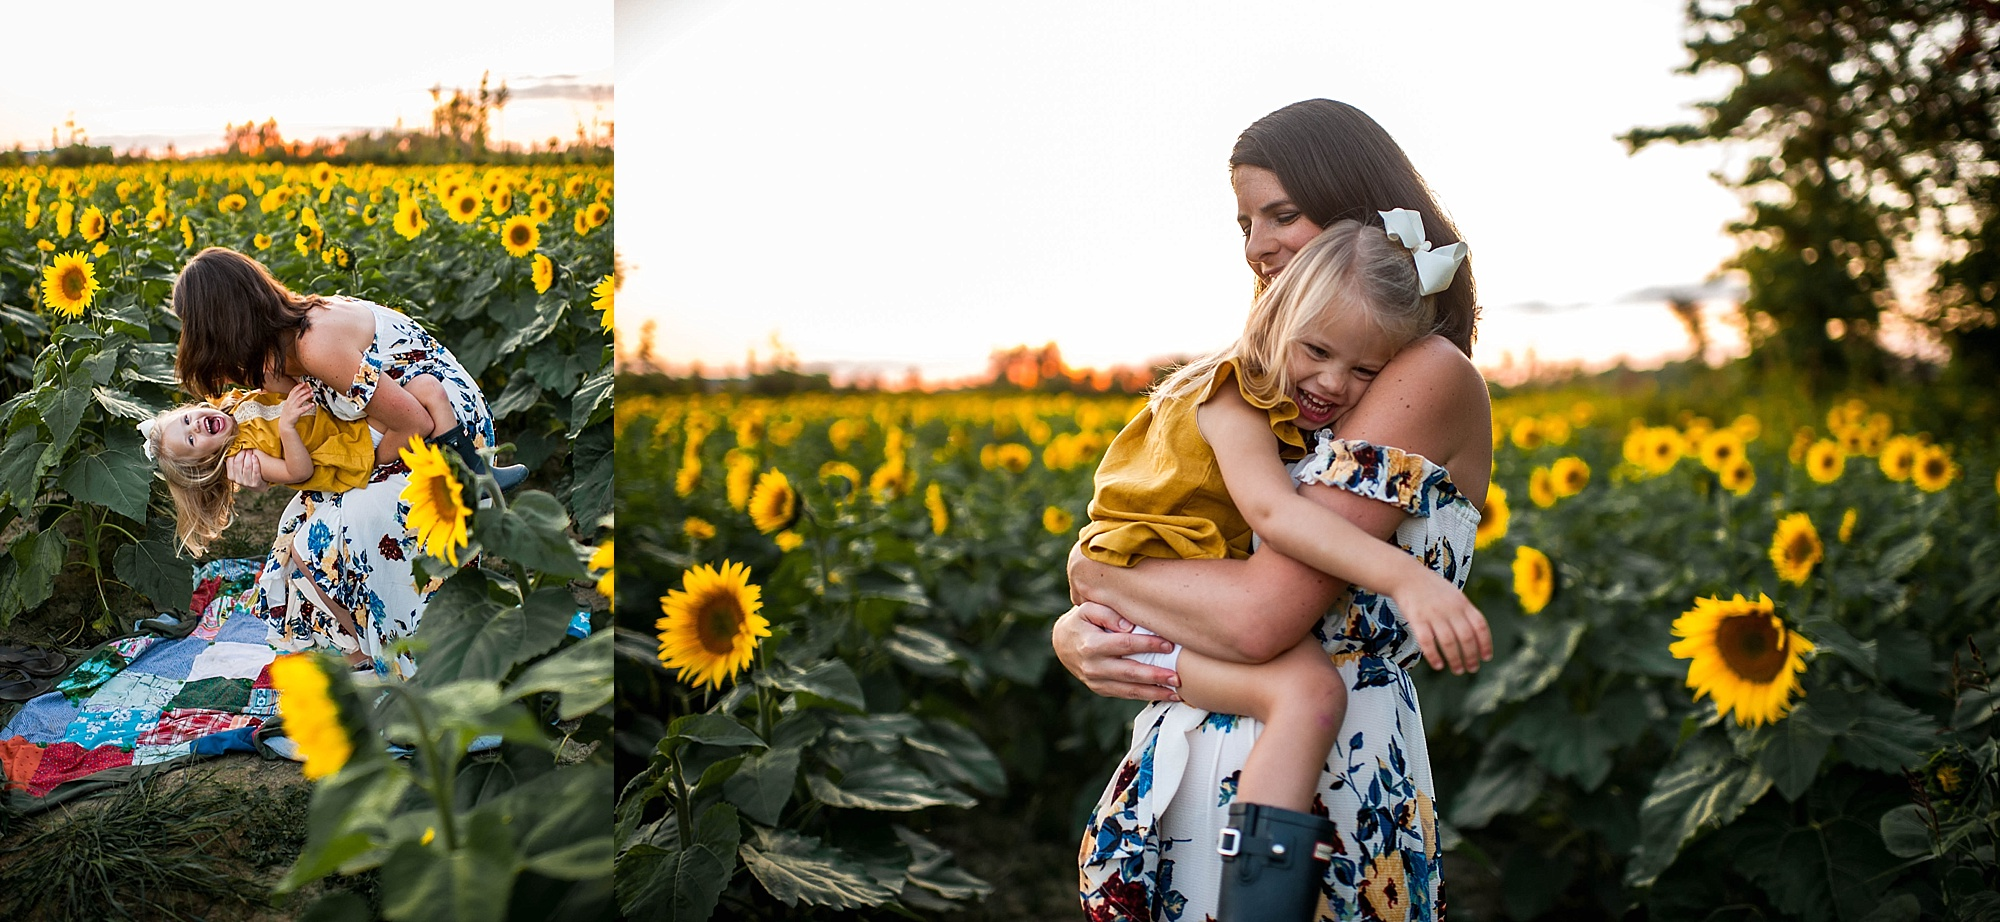 lauren-grayson-photography-cleveland-ohio-photographer-sunflower-fields-sunset-golden-hour-photo-shoot-mommy-and-me-family-child-photographer_0573.jpg